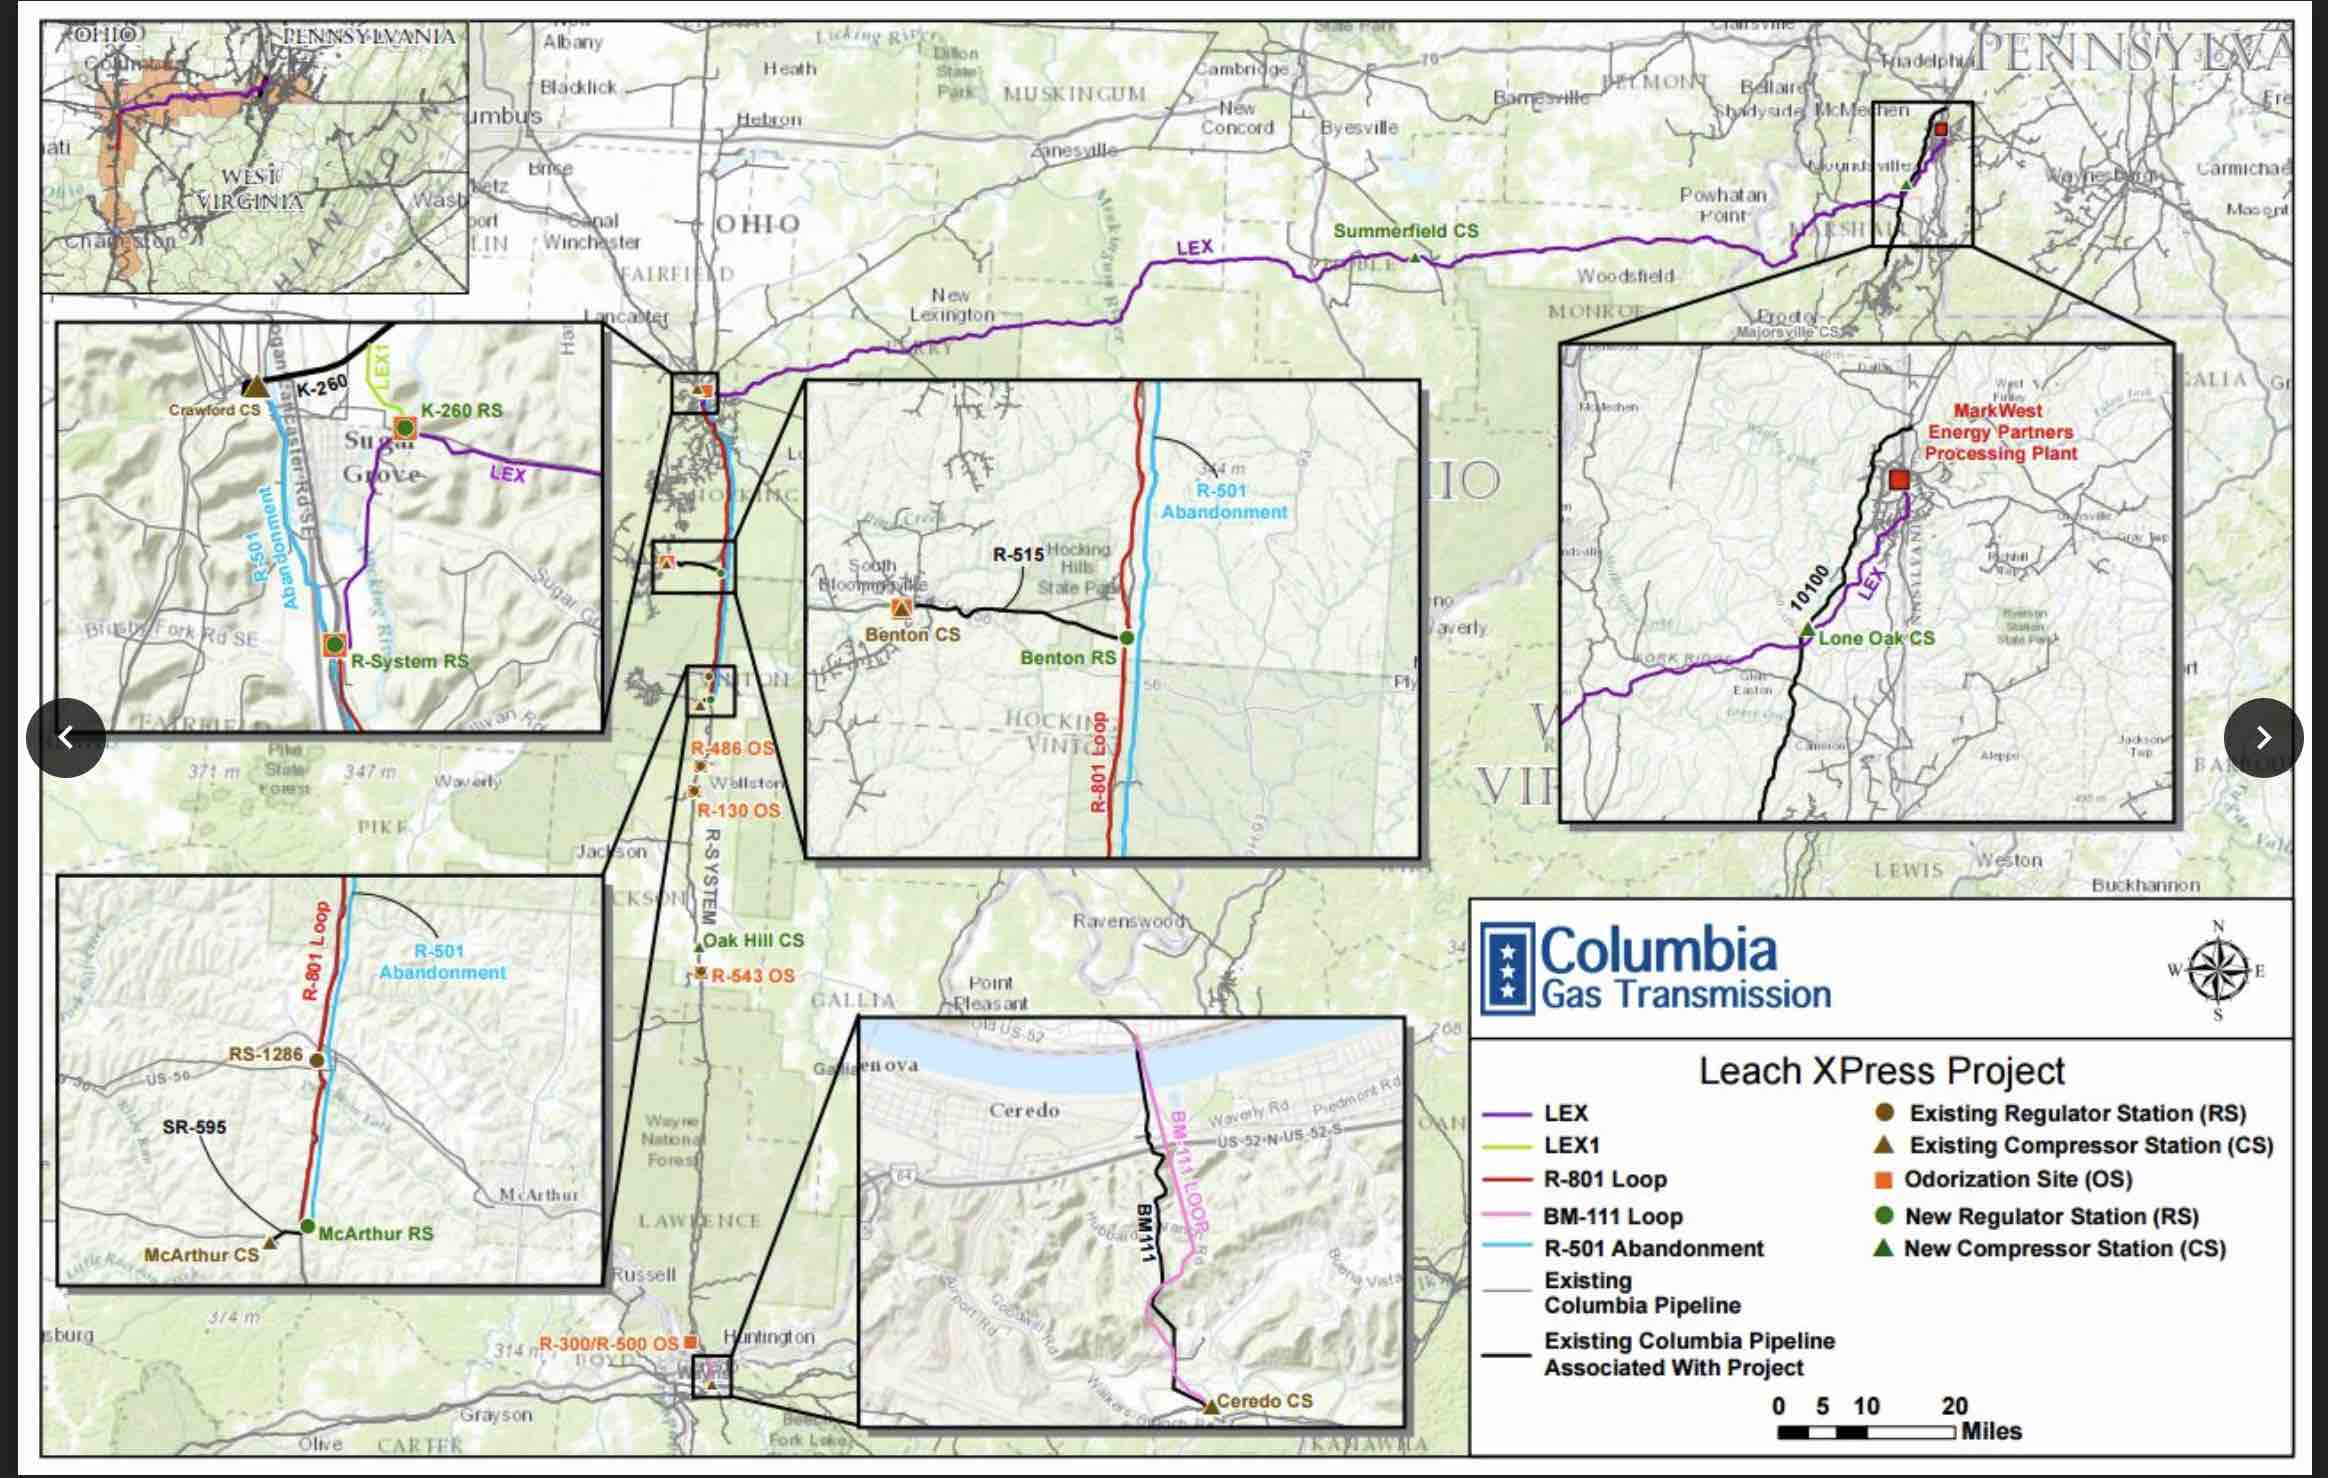 Leach XPress Pipeline map